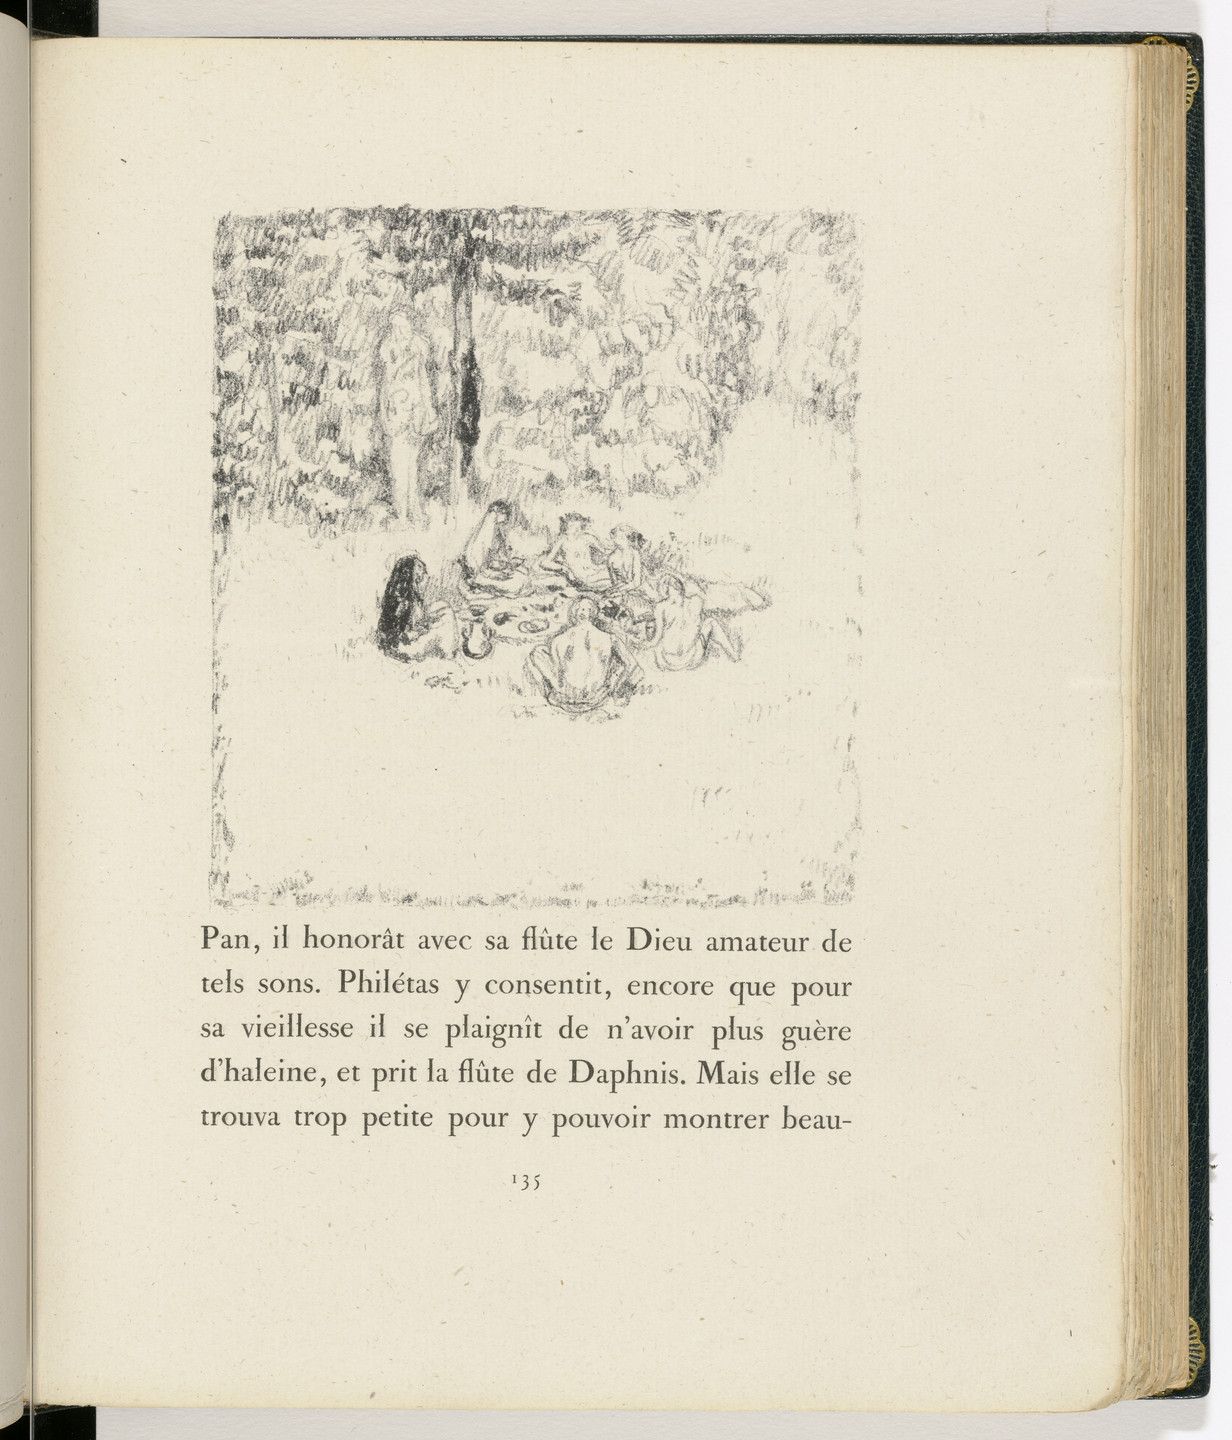 Pierre Bonnard. In-text plate (page 135) from Daphnis et Chloé. 1902